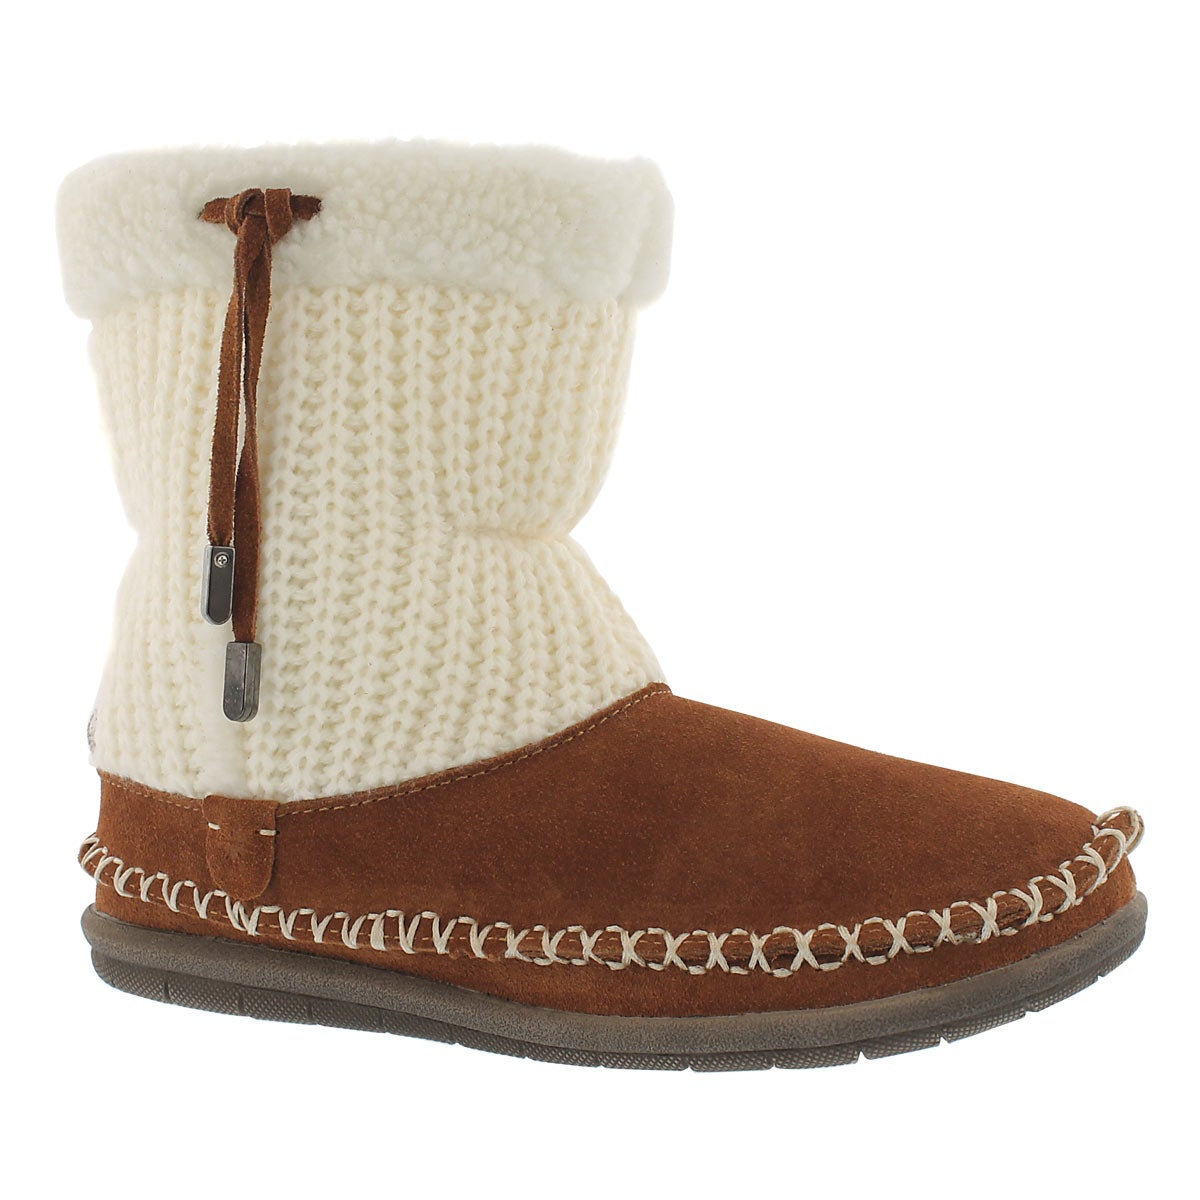 Women's ALANA spice bootie slippers